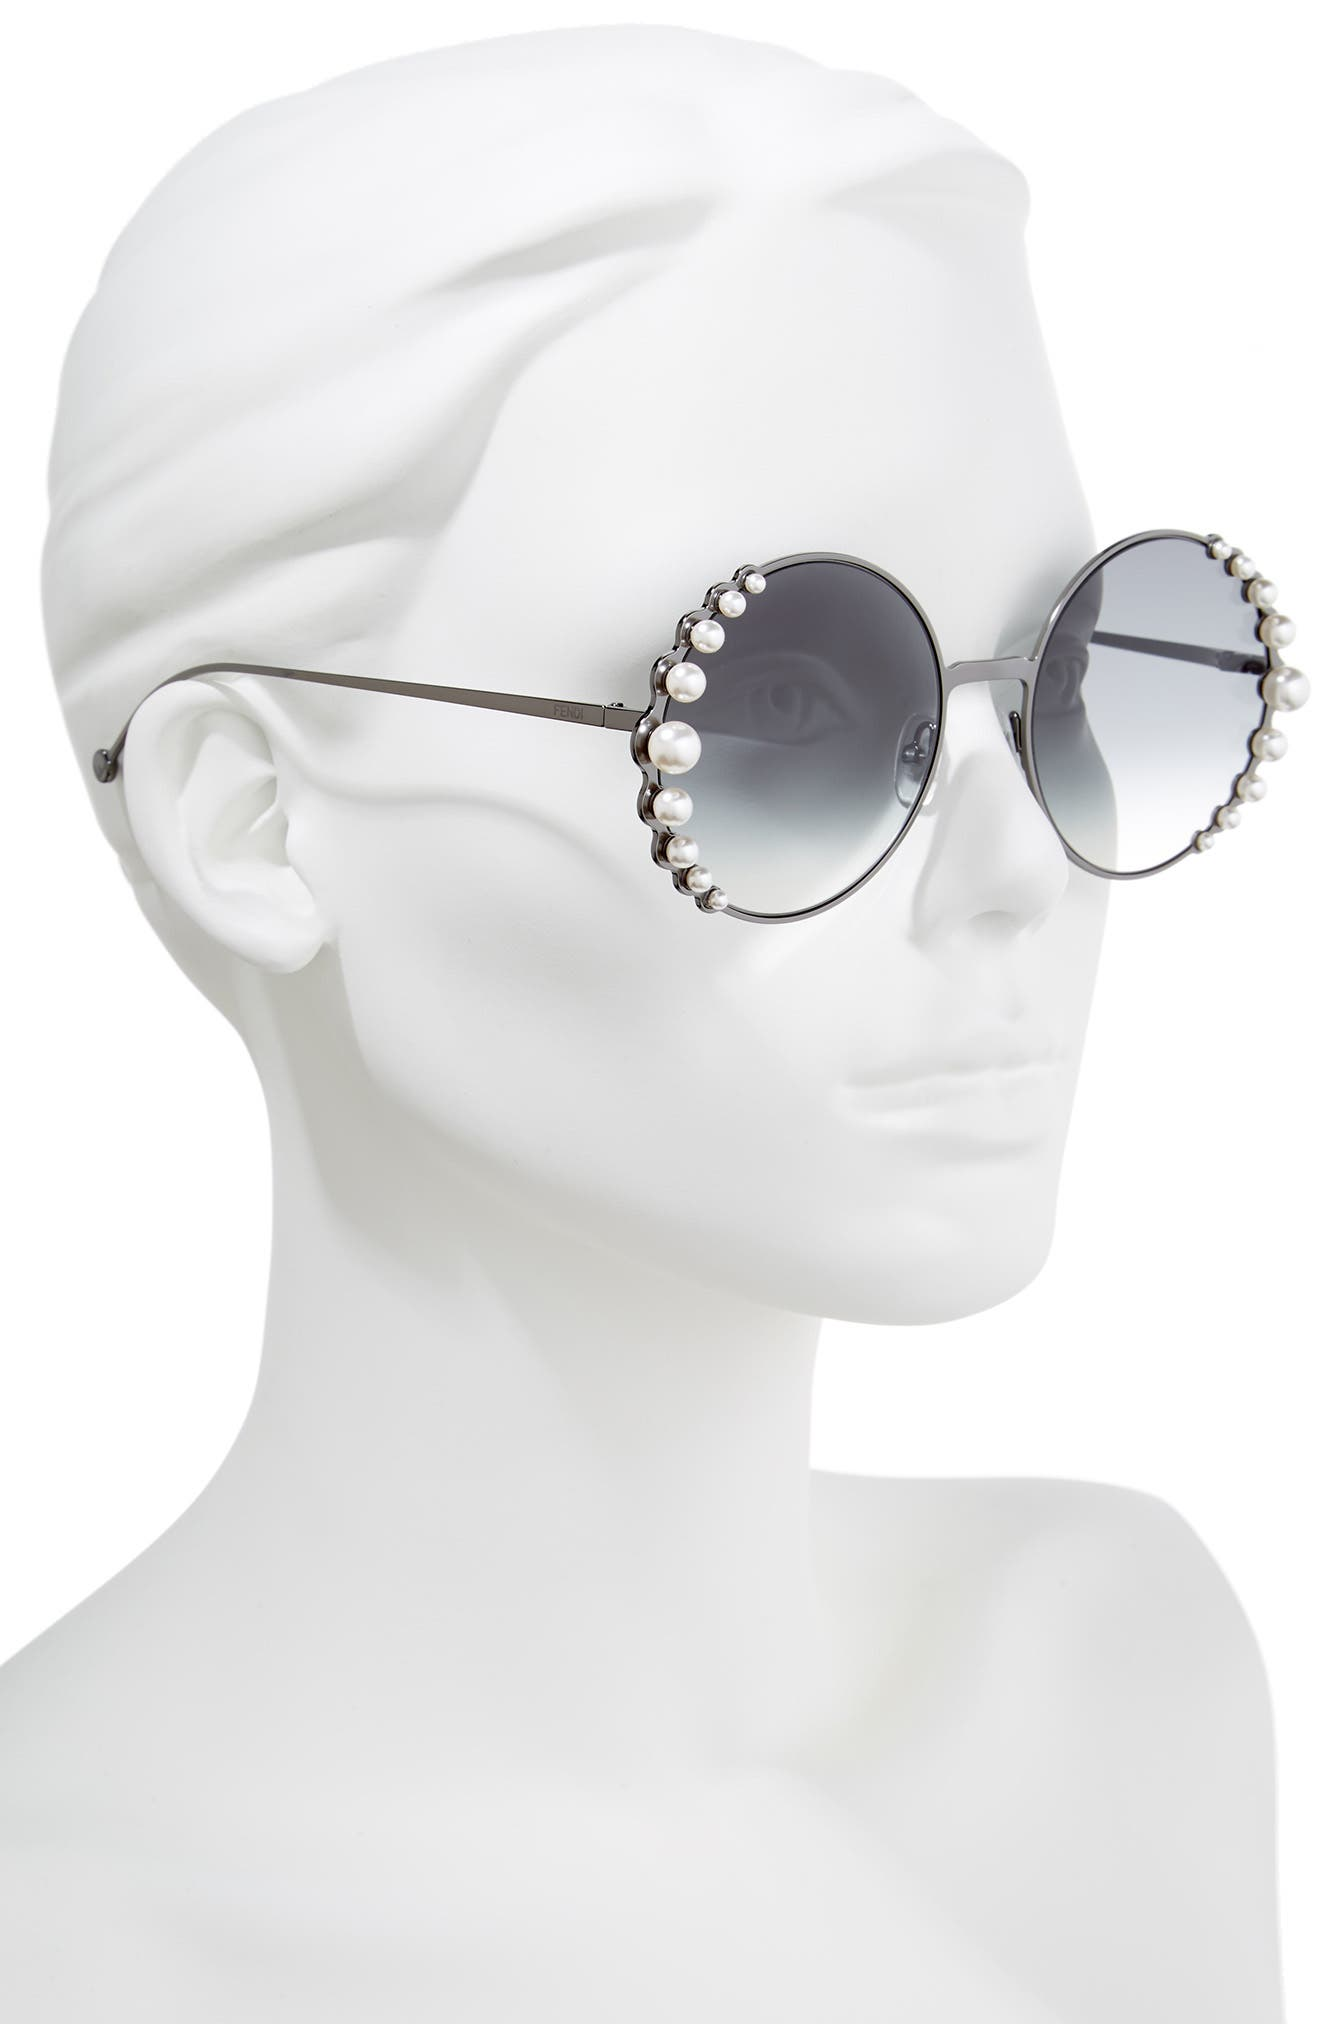 58mm Embellished Round Sunglasses,                             Alternate thumbnail 2, color,                             DARK RUTHENIUM